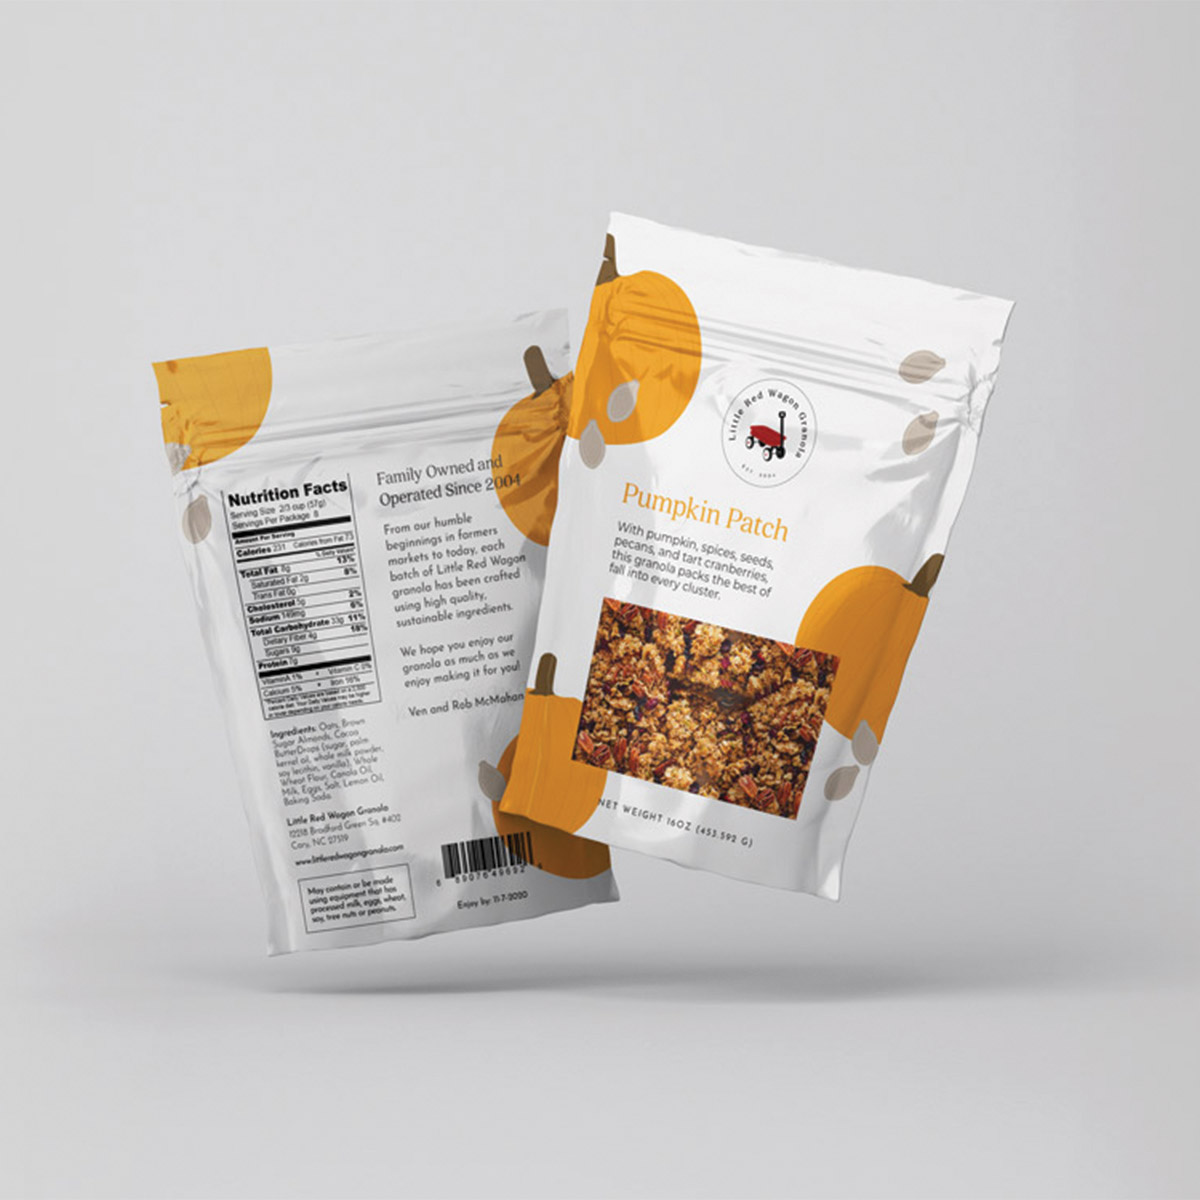 Little Red Wagon Granola Pumpkin Patch flavor; sustainable food packaging